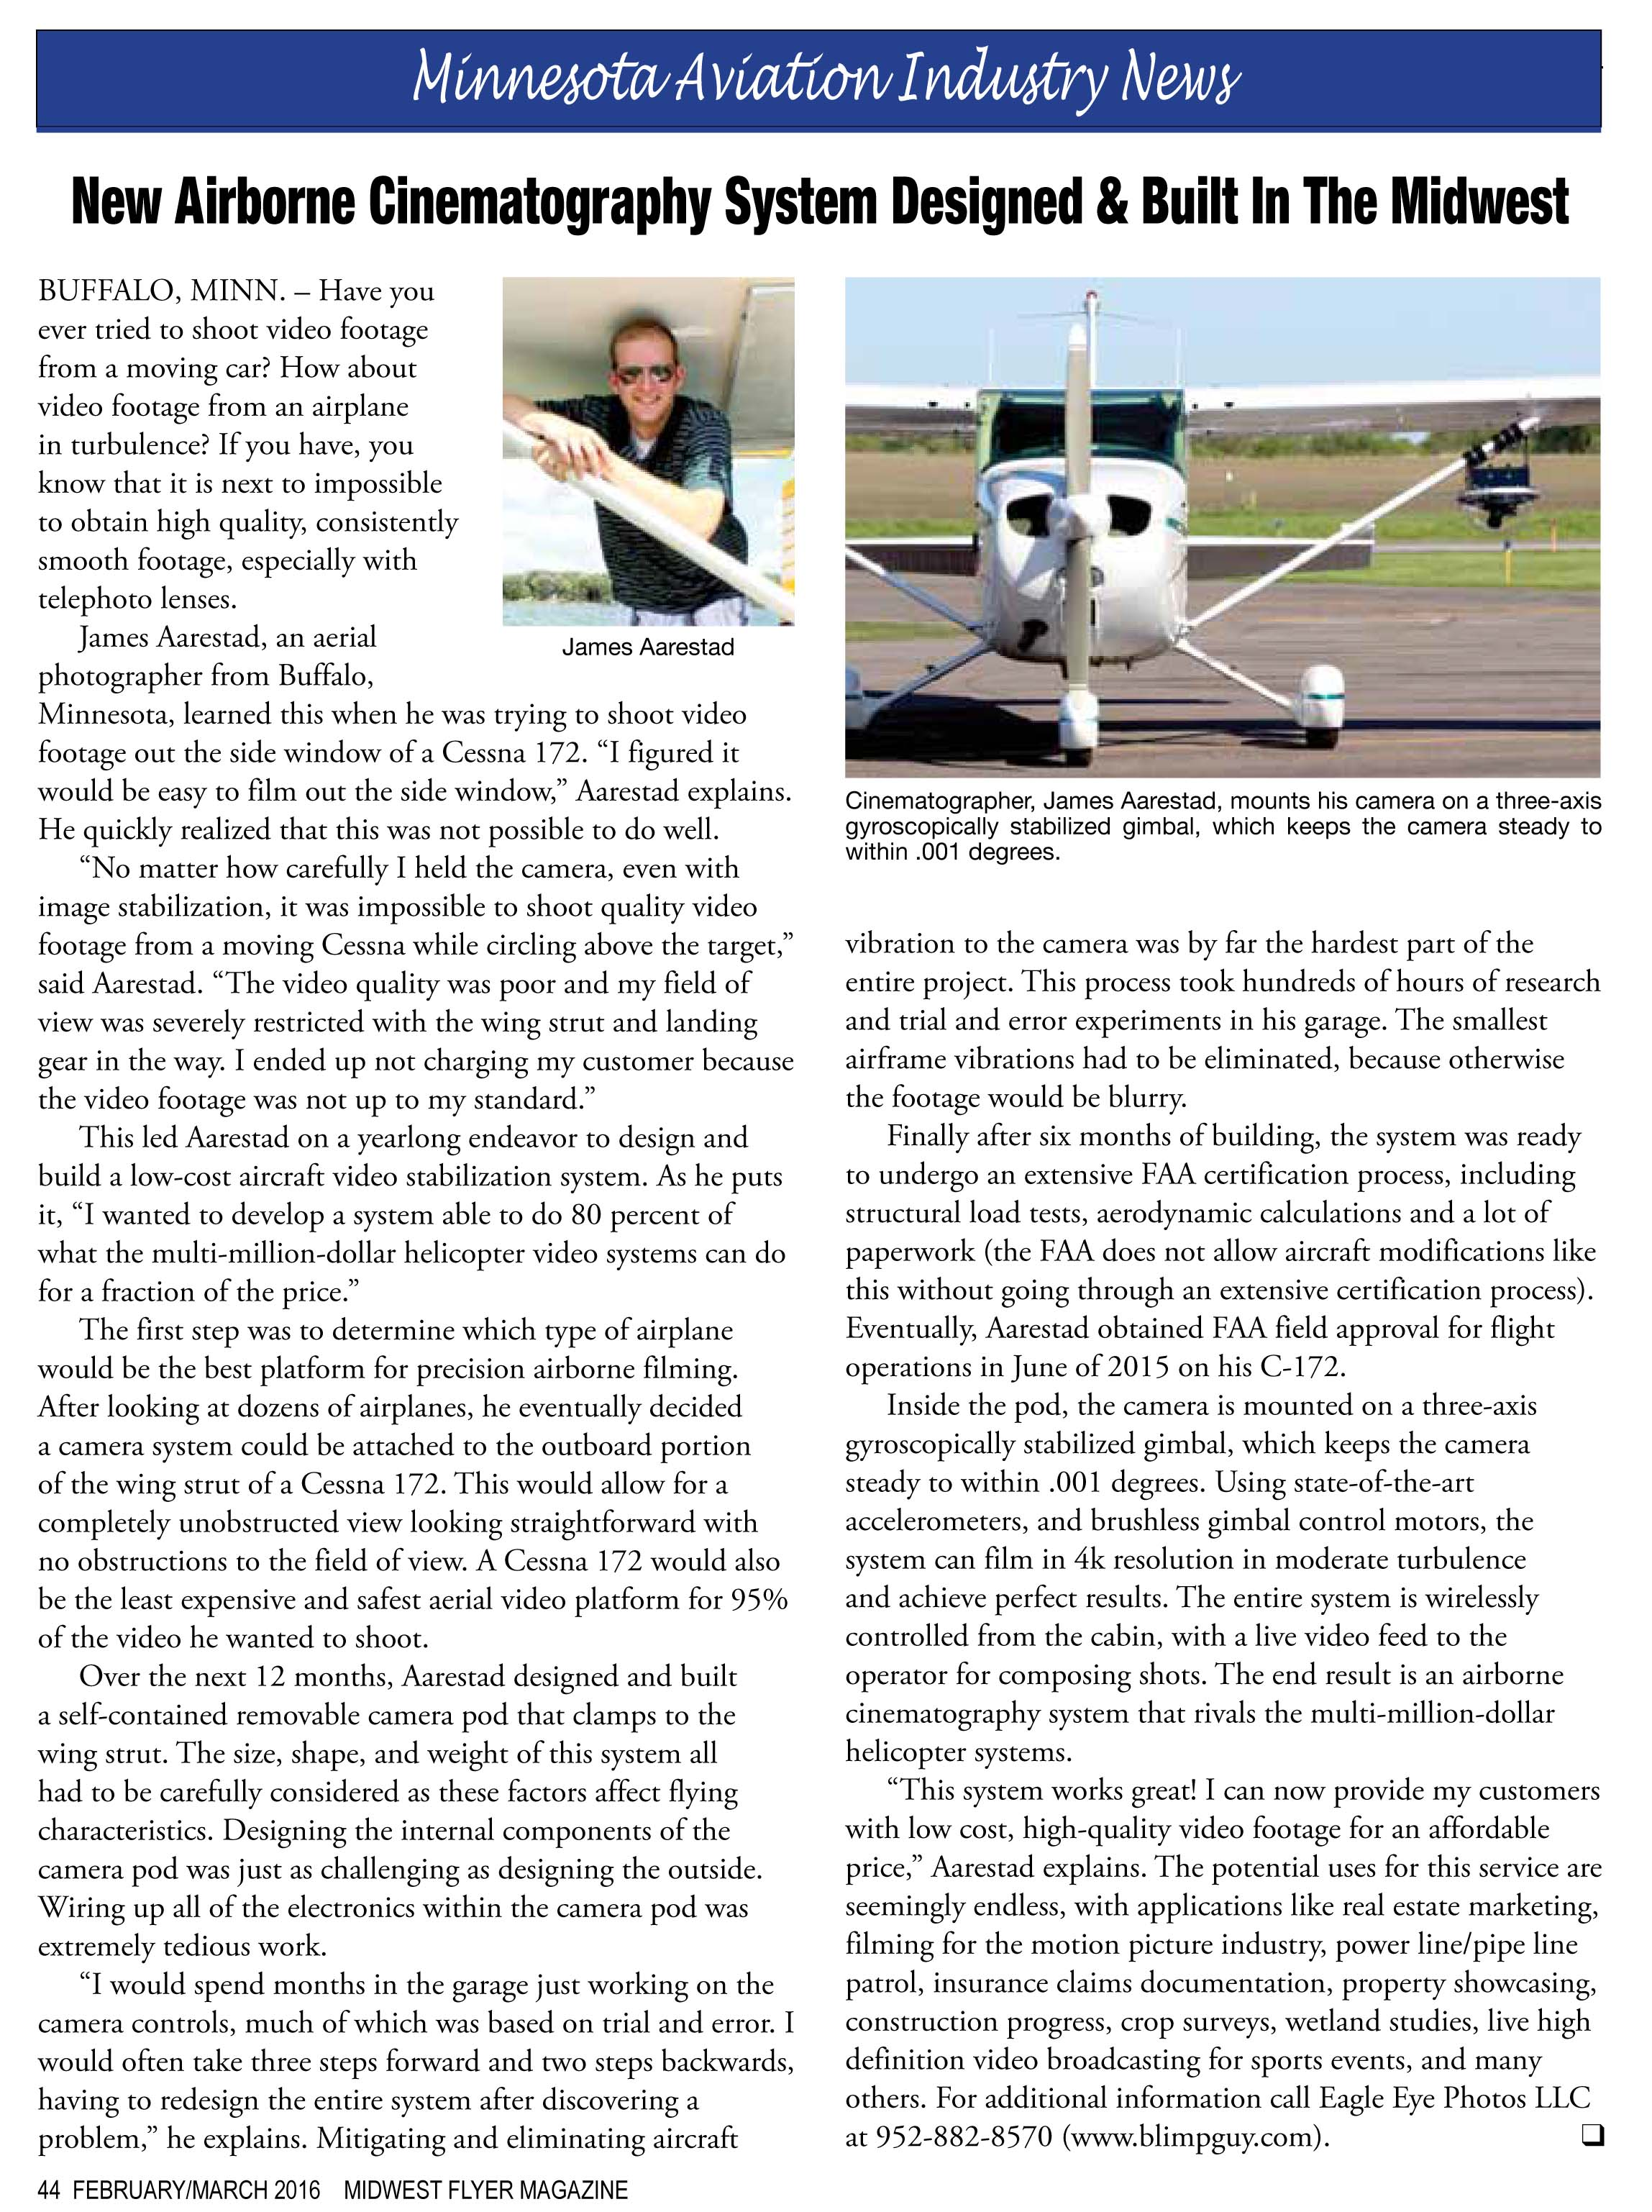 Midwest Flyer article about Eagle Eye Photos LLC